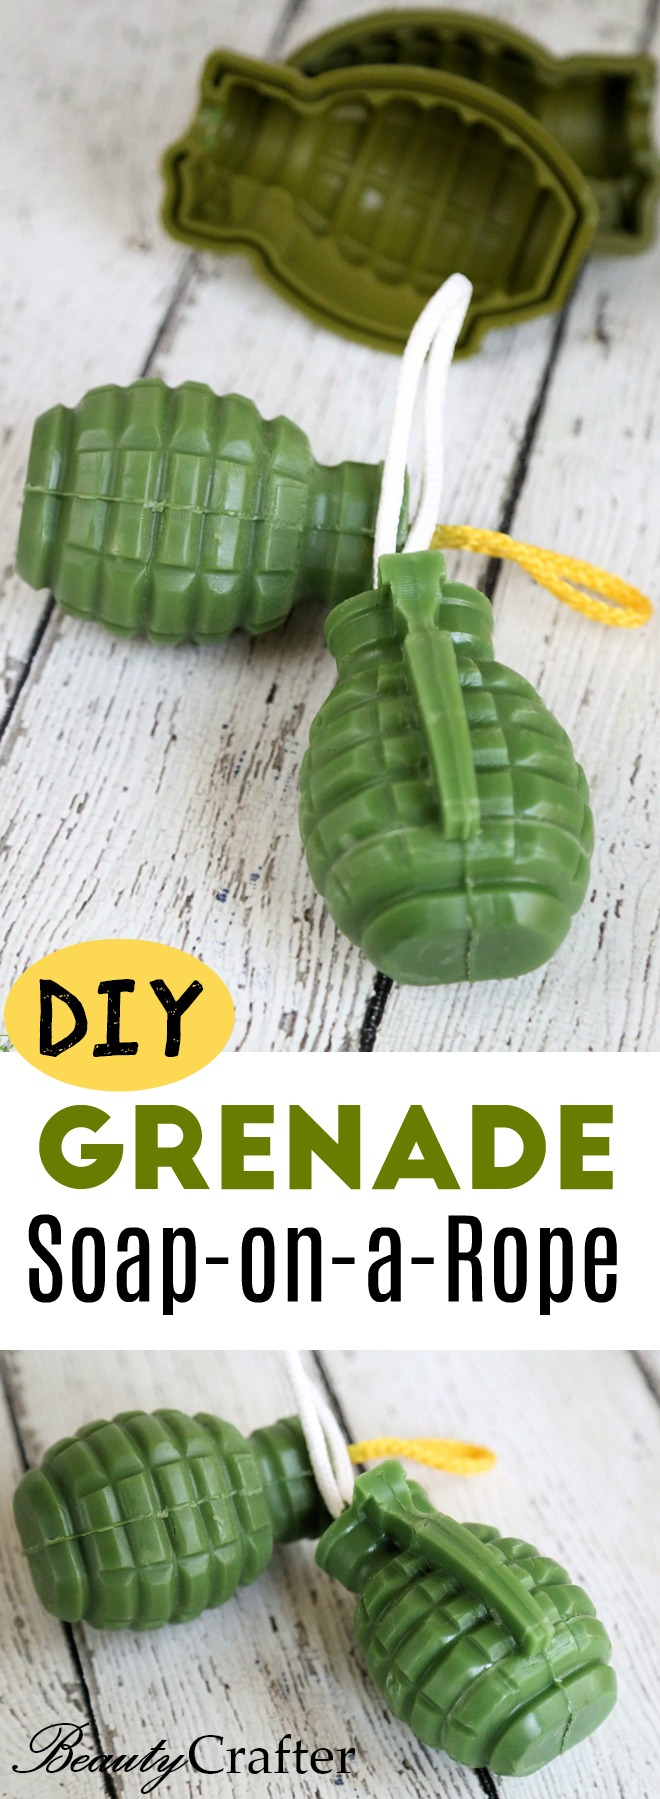 Grenade Soap on a Rope DIY - Easy Homemade gift for men.